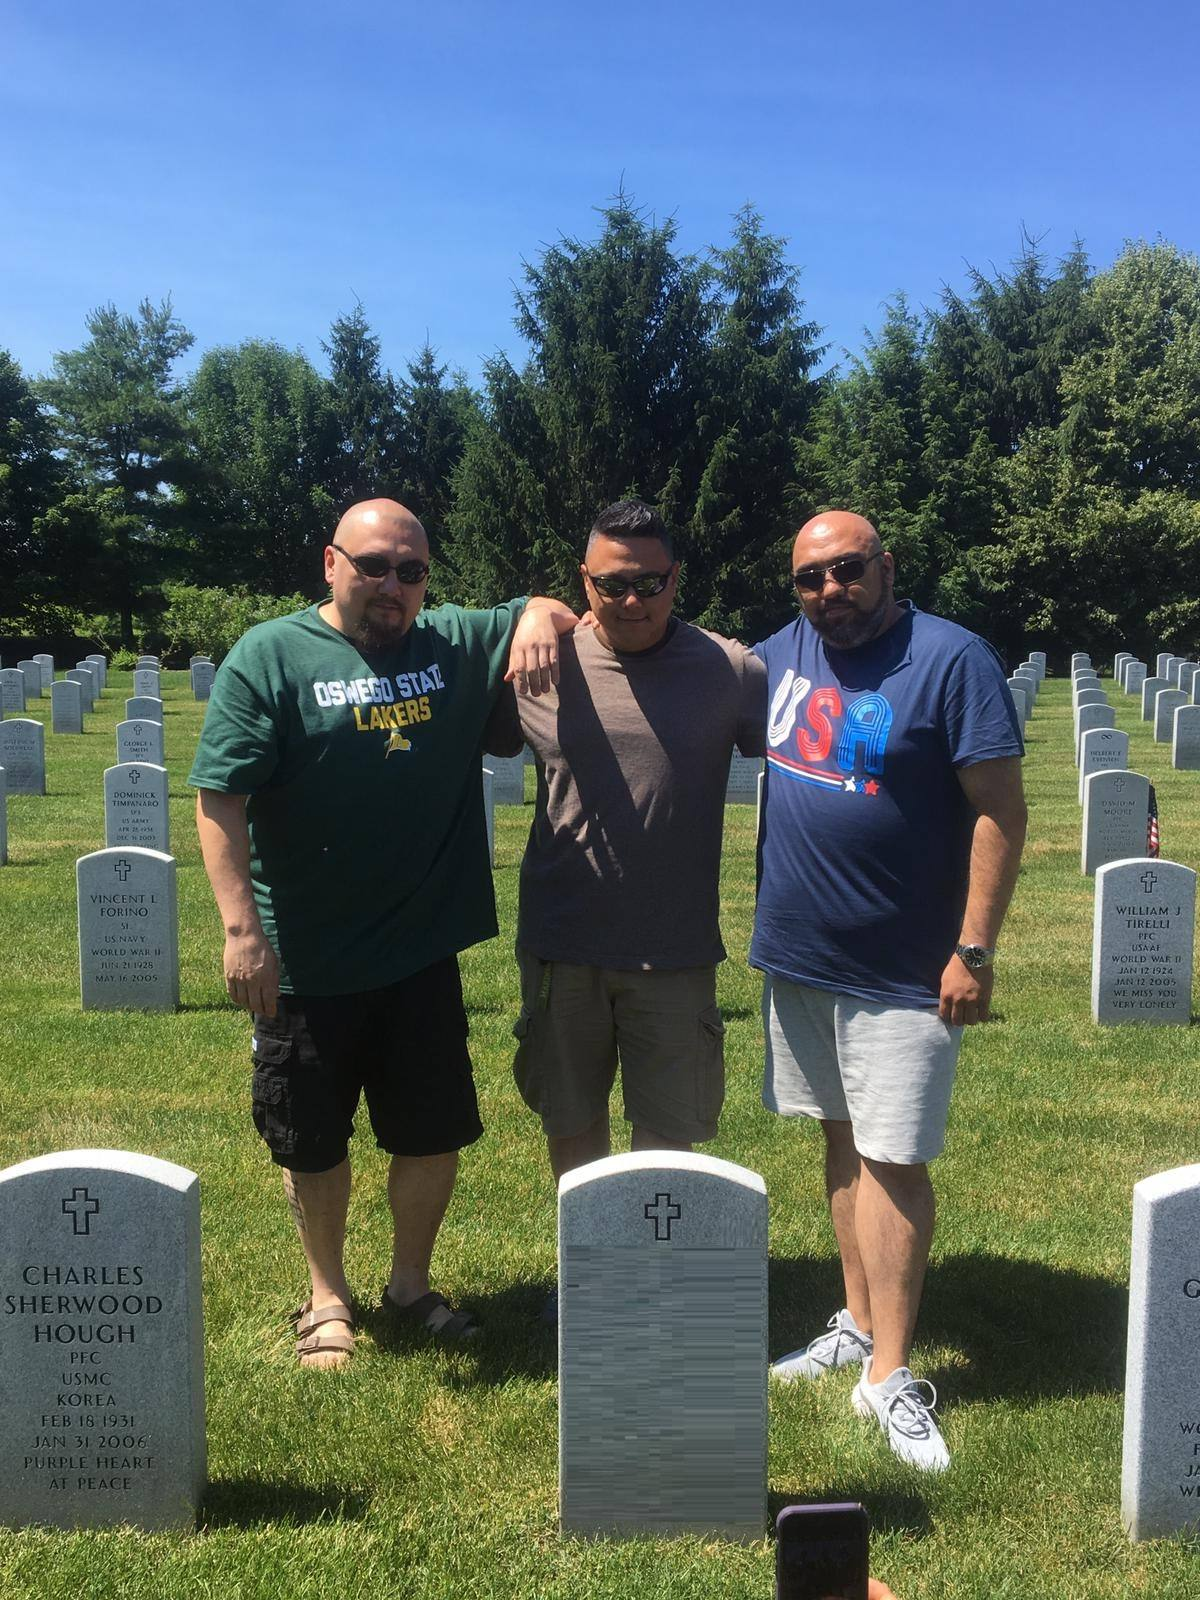 Johannes and his biological brothers visit their father's grave together